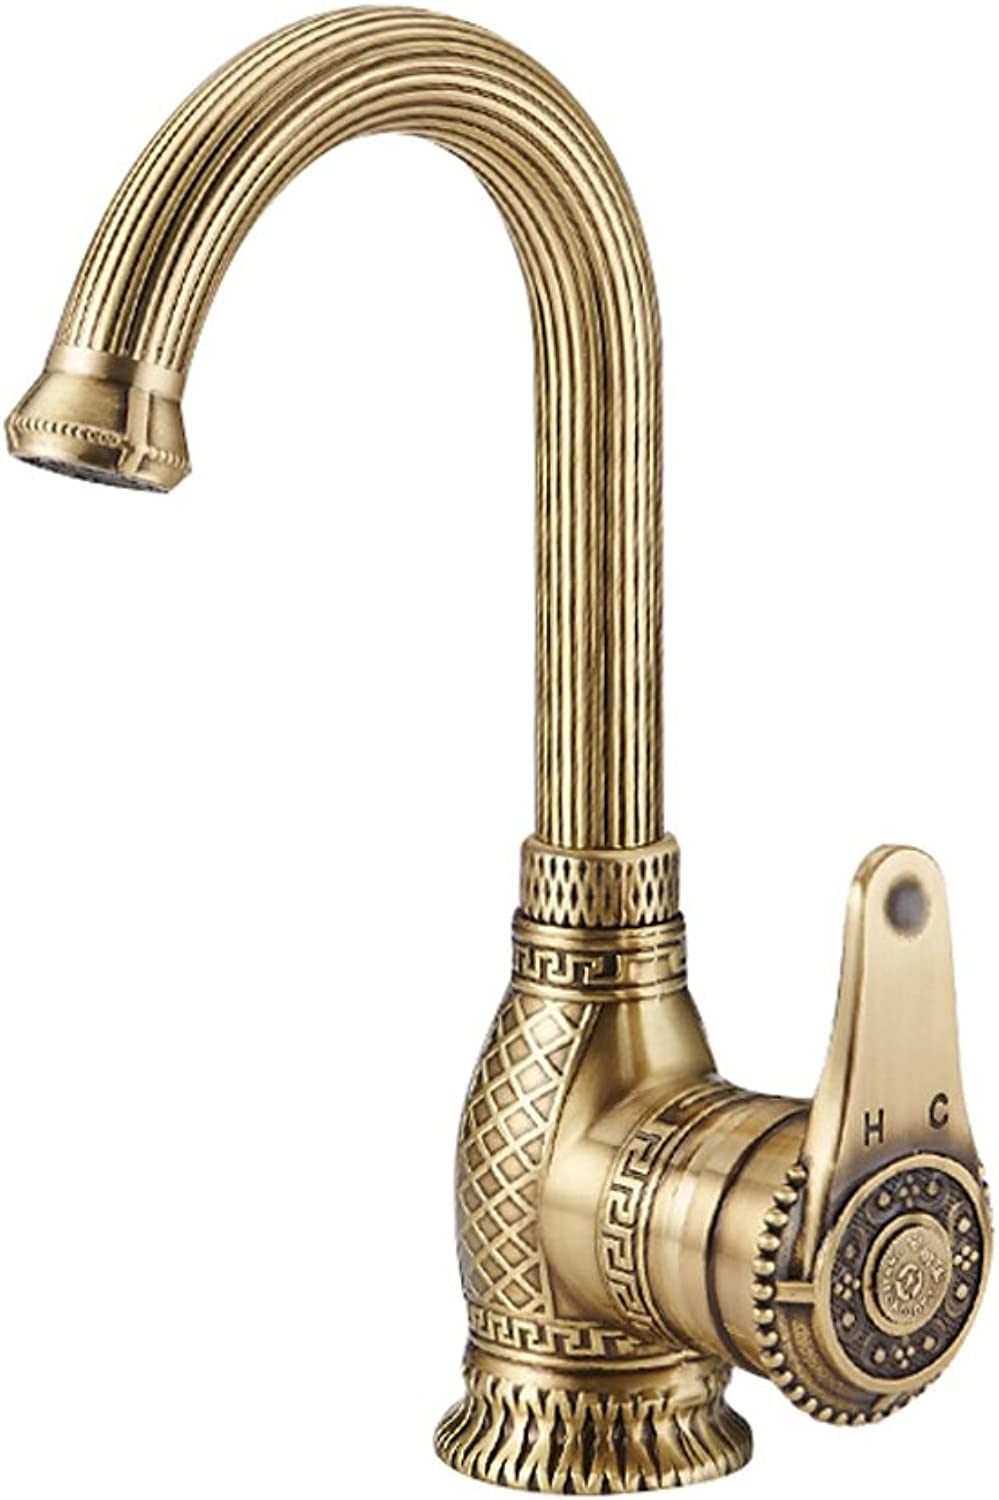 Neilyn Full Copper Vintage Faucets Tap Hot and Cold Water Basin European Retro Washbasin Mixer Taps Single Handle Single Hole 360 Degree redatable Vintage Faucet High-grade Water-saving ( Size   S )